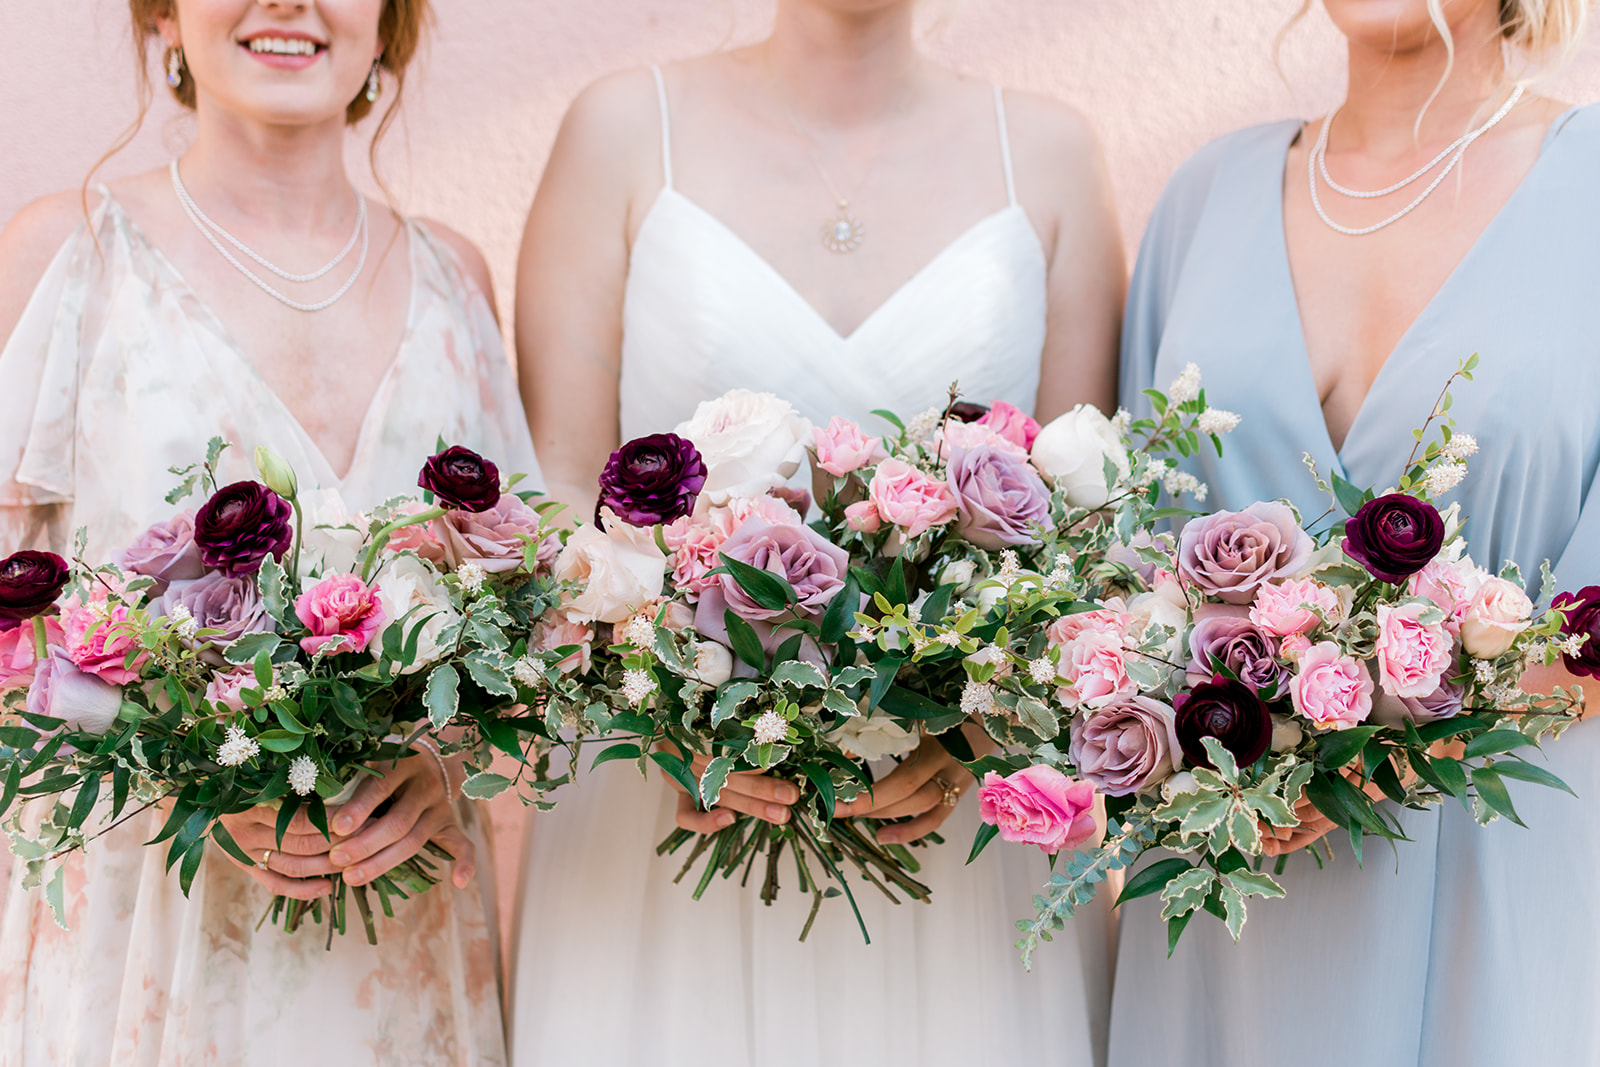 healthy-weight-loss-tips-for-brides-bride-weight-loss-ivory-and-beau-savannah-bridal-boutique-savannah-wedding-dresses-savannah-bridal-shop-rebecca-ingram-maggie-sottero-jenny-yoo-floral-print-bridesmaids-dresses.jpg